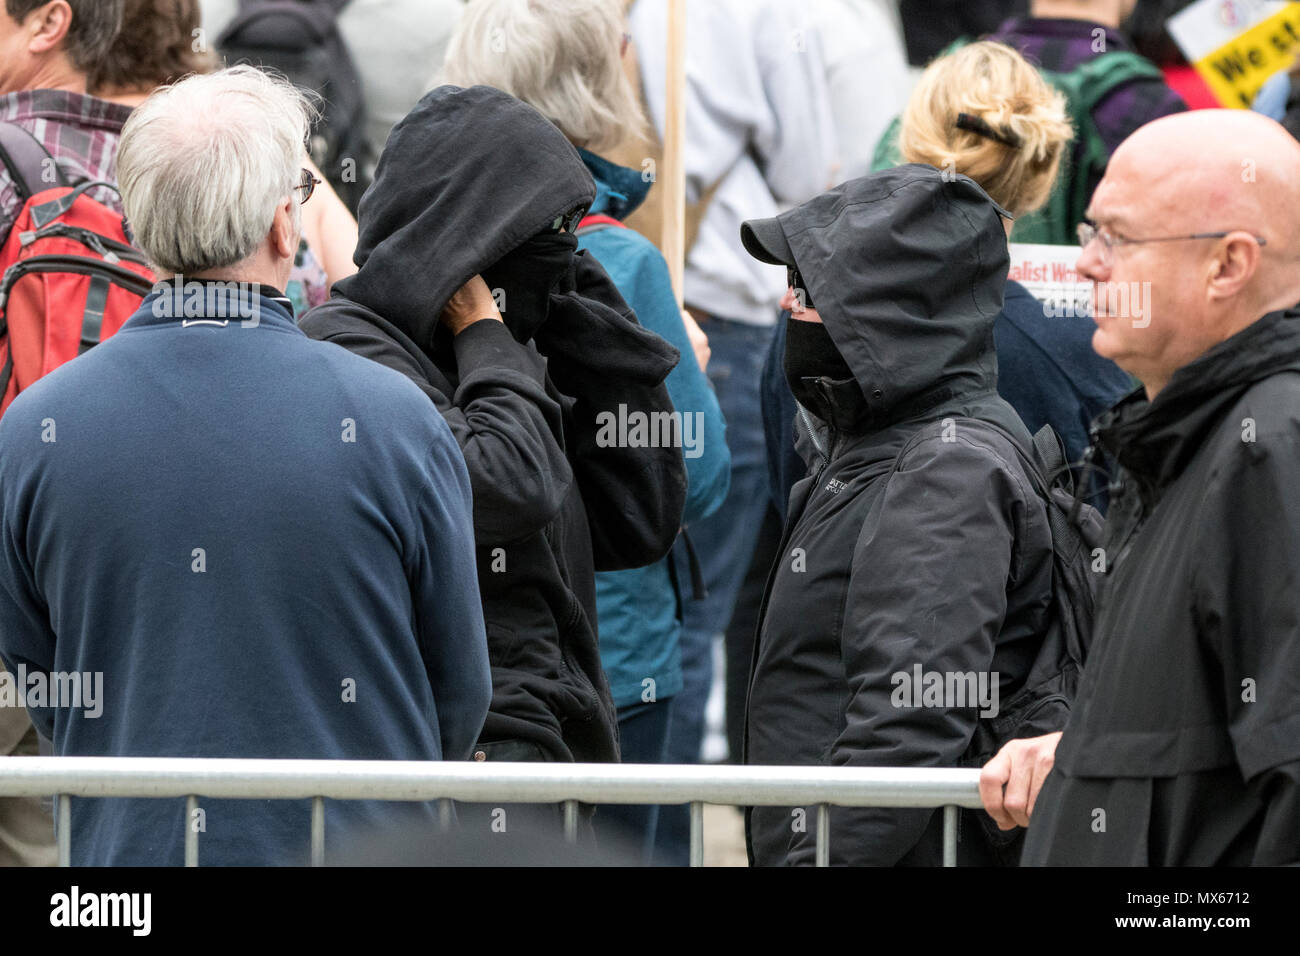 Manchester, UK. 2 June 2018 - Stand Up To Racism and Antifa counter-protest in Manchester during a march and demonstration by pro-Tommy Robinson and DFLA/ FLA activists Credit: Benjamin Wareing/Alamy Live News - Stock Image